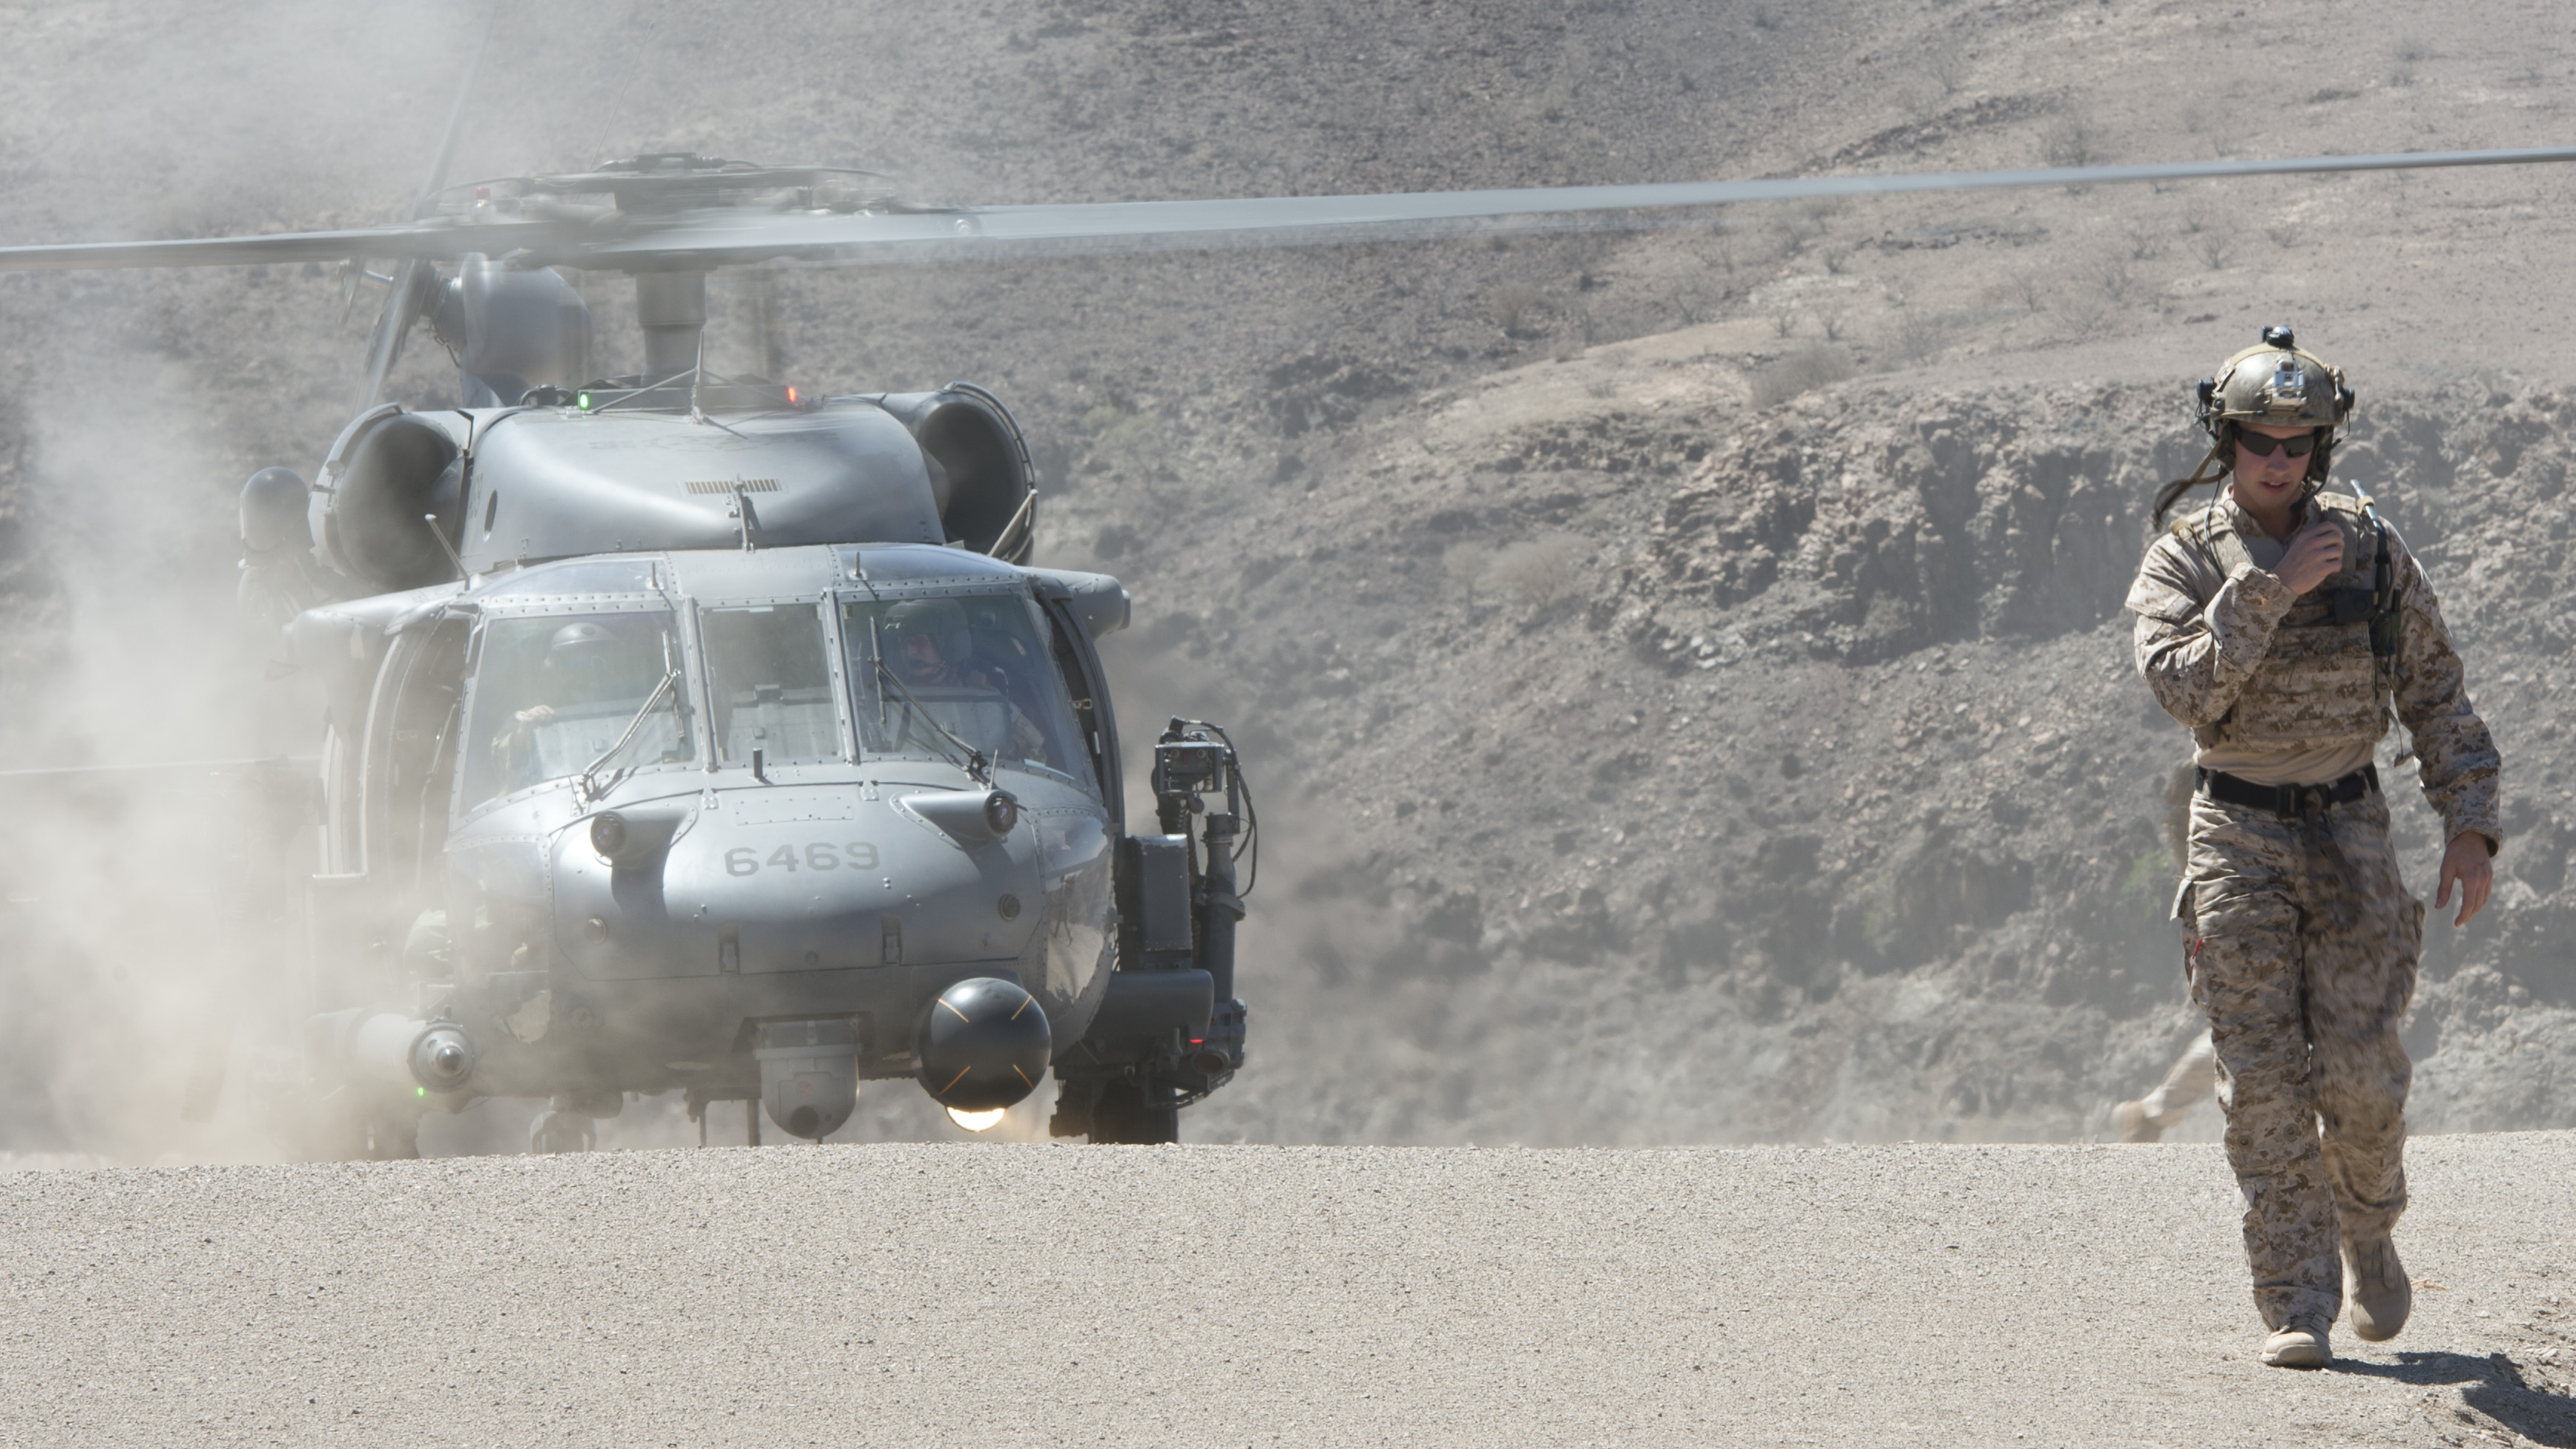 A U.S. Air Force HH-60 Pave Hawk from the 303rd Expeditionary Rescue Squadron prepares to take off after conducting a casualty evacuation drill during a bilateral training exercise in Arta, Djibouti, Feb. 4, 2015. The event was part of a scheduled bilateral close air support exercise between the 24th Marine Expeditionary Unit and French soldiers and sailors. (U.S. Air Force photo by Staff Sgt. Kevin Iinuma)